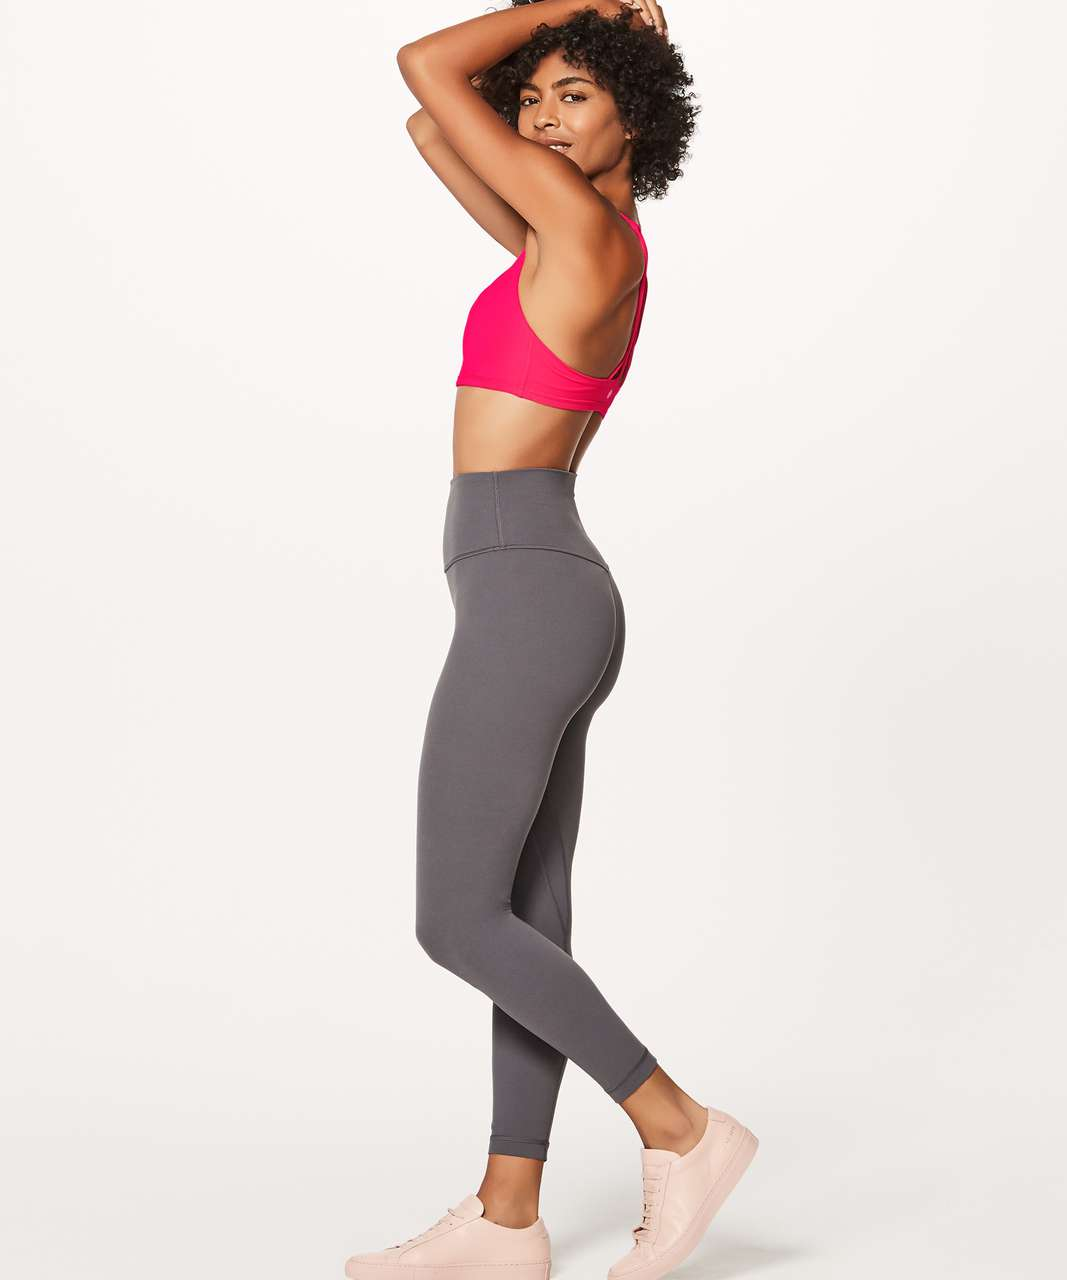 Lululemon Free To Be Bra - Razzle